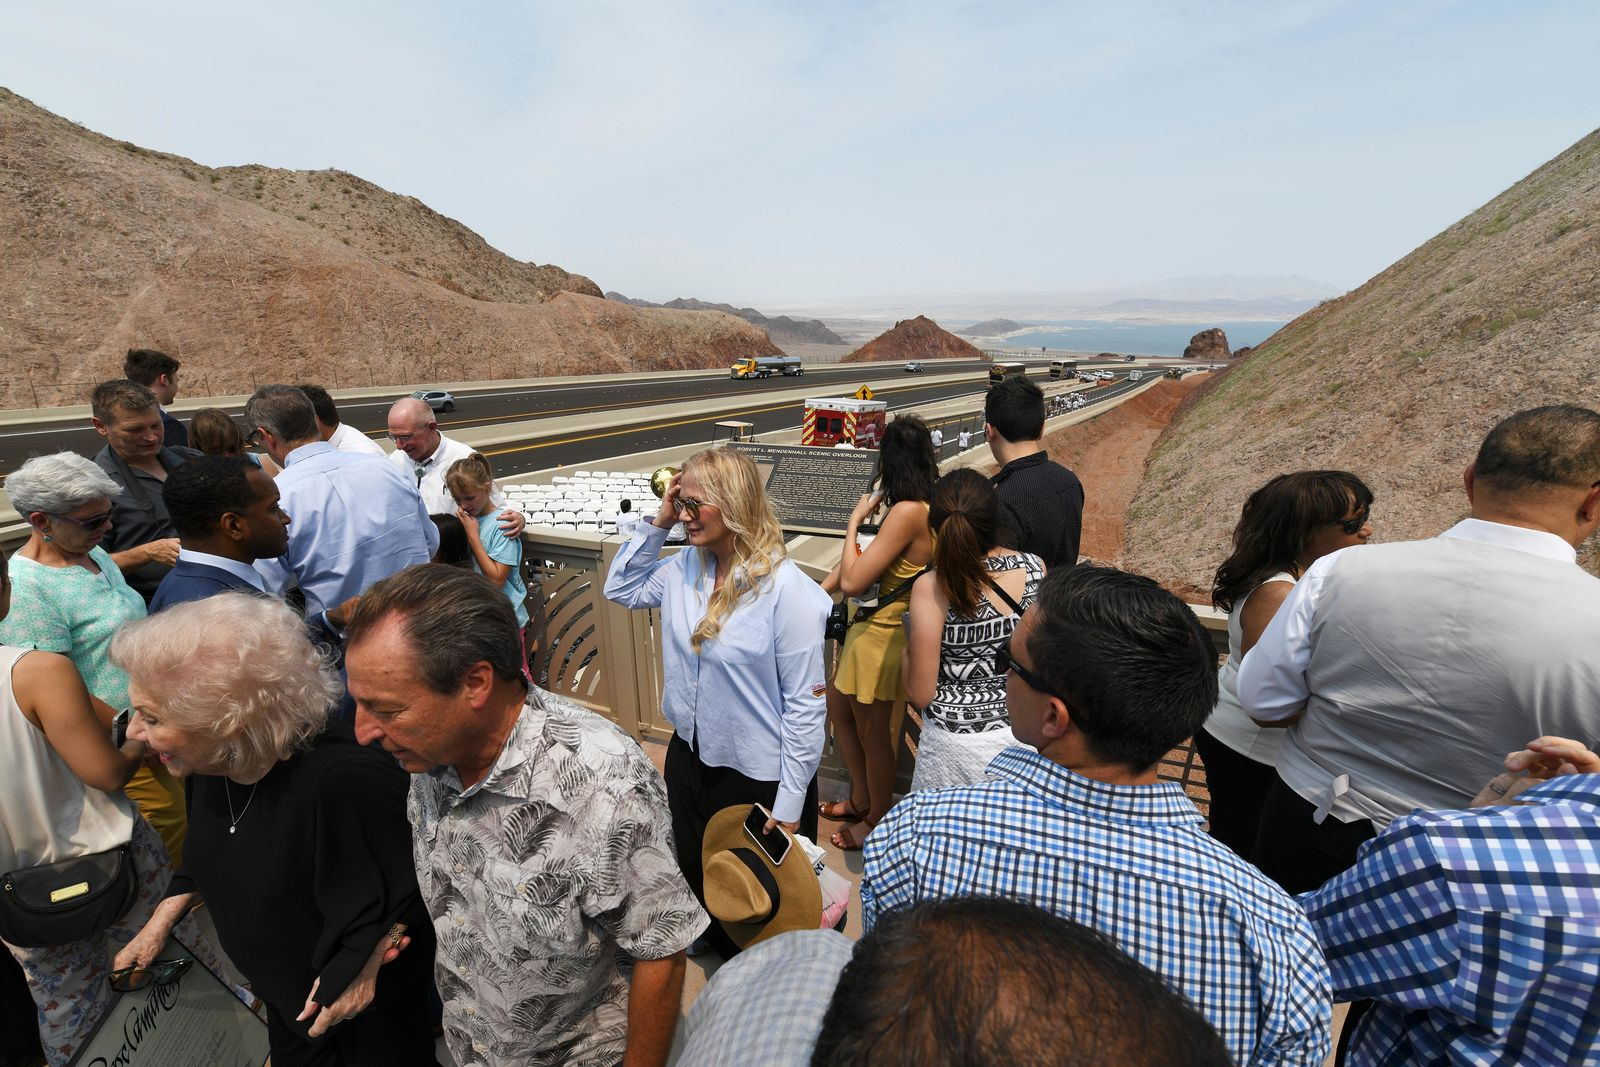 Attendees take in the view from the Robert Mendenhall Scenic Overlook during the grand opening of a new section of Interstate 11 Thursday, August 9, 2018, in Boulder City. The section, also referred to as the Boulder City Bypass, marks the official start of the I-11 project between Las Vegas and Phoenix. CREDIT: Sam Morris/Las Vegas News Bureau